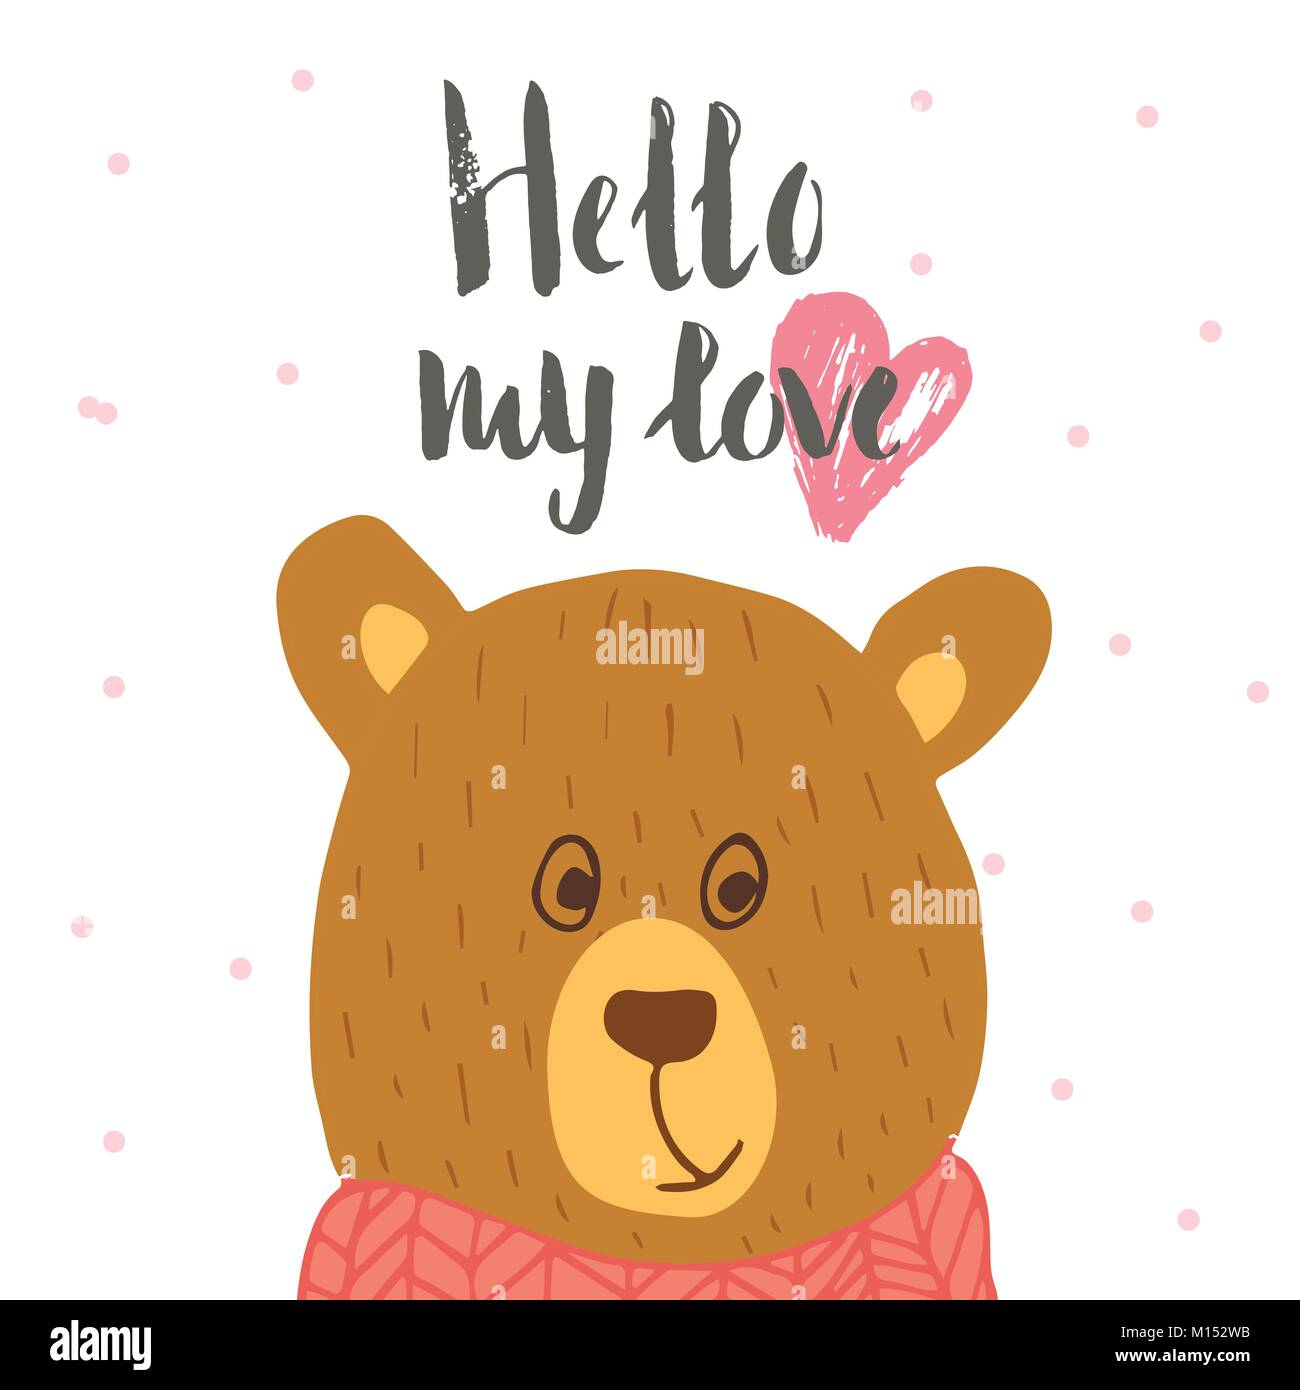 Lovely Valentines Day Gift Card With Teddy Bear Heart And Lettering Hello Love Calligraphy Hand Drawn Design Elements For Print Poster Invitation